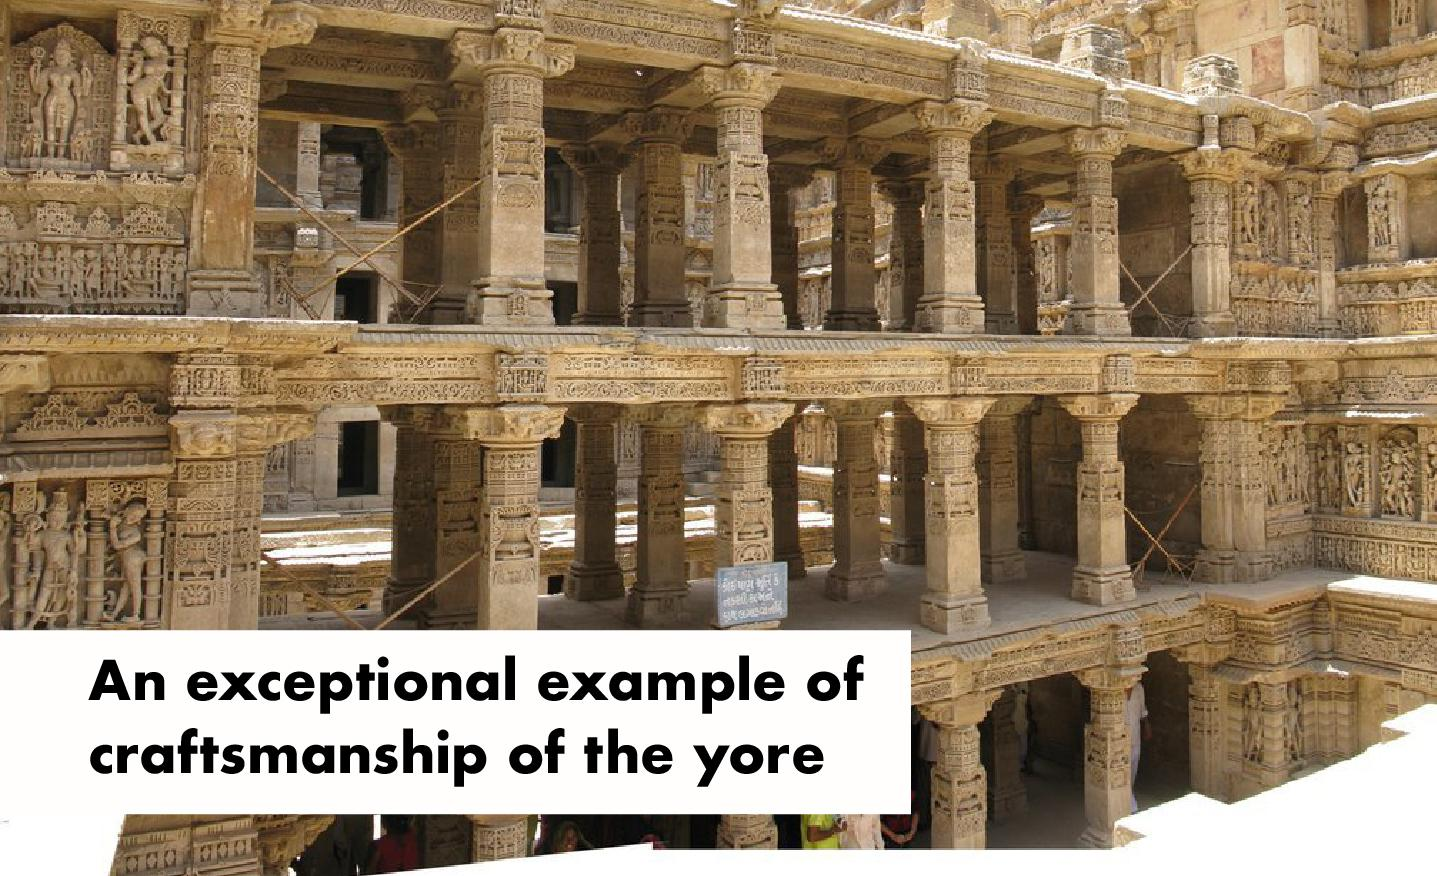 Heard of Rani Ki Vav? Visit India's 6 unique yet little-known UNESCO heritage sites with your child